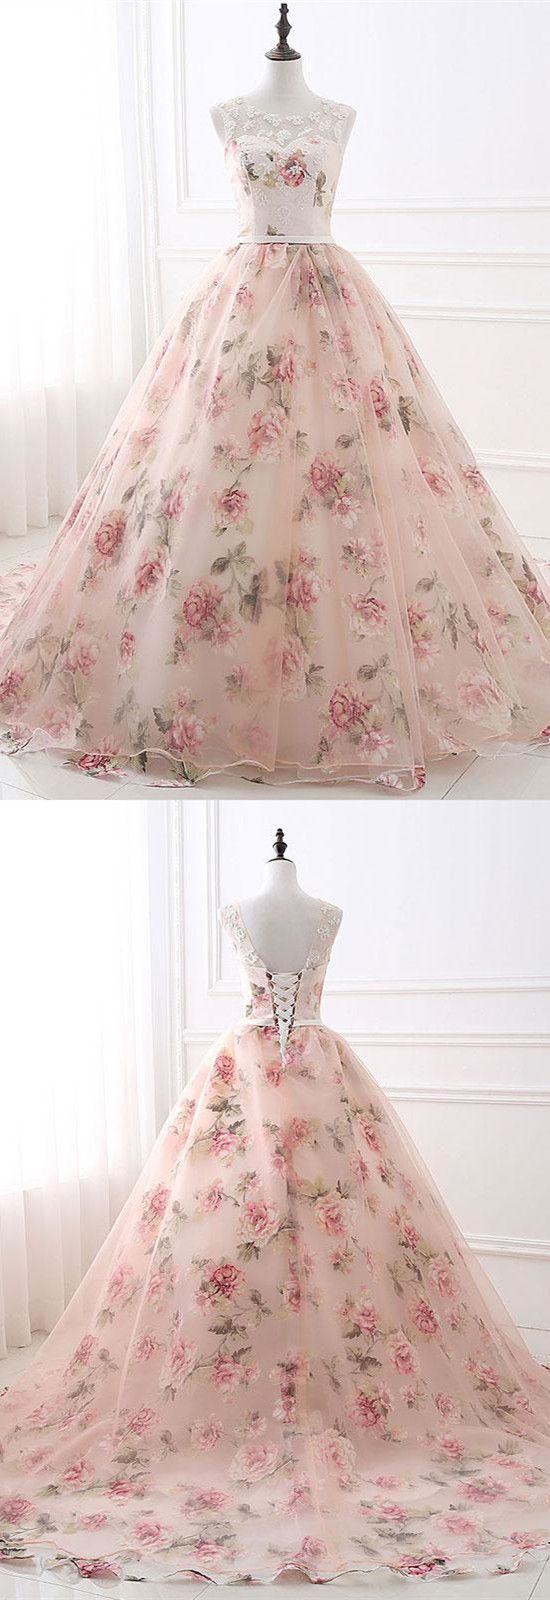 Romantic Pink Floral Long Ball Gown from dreamdressy | Pinterest ...